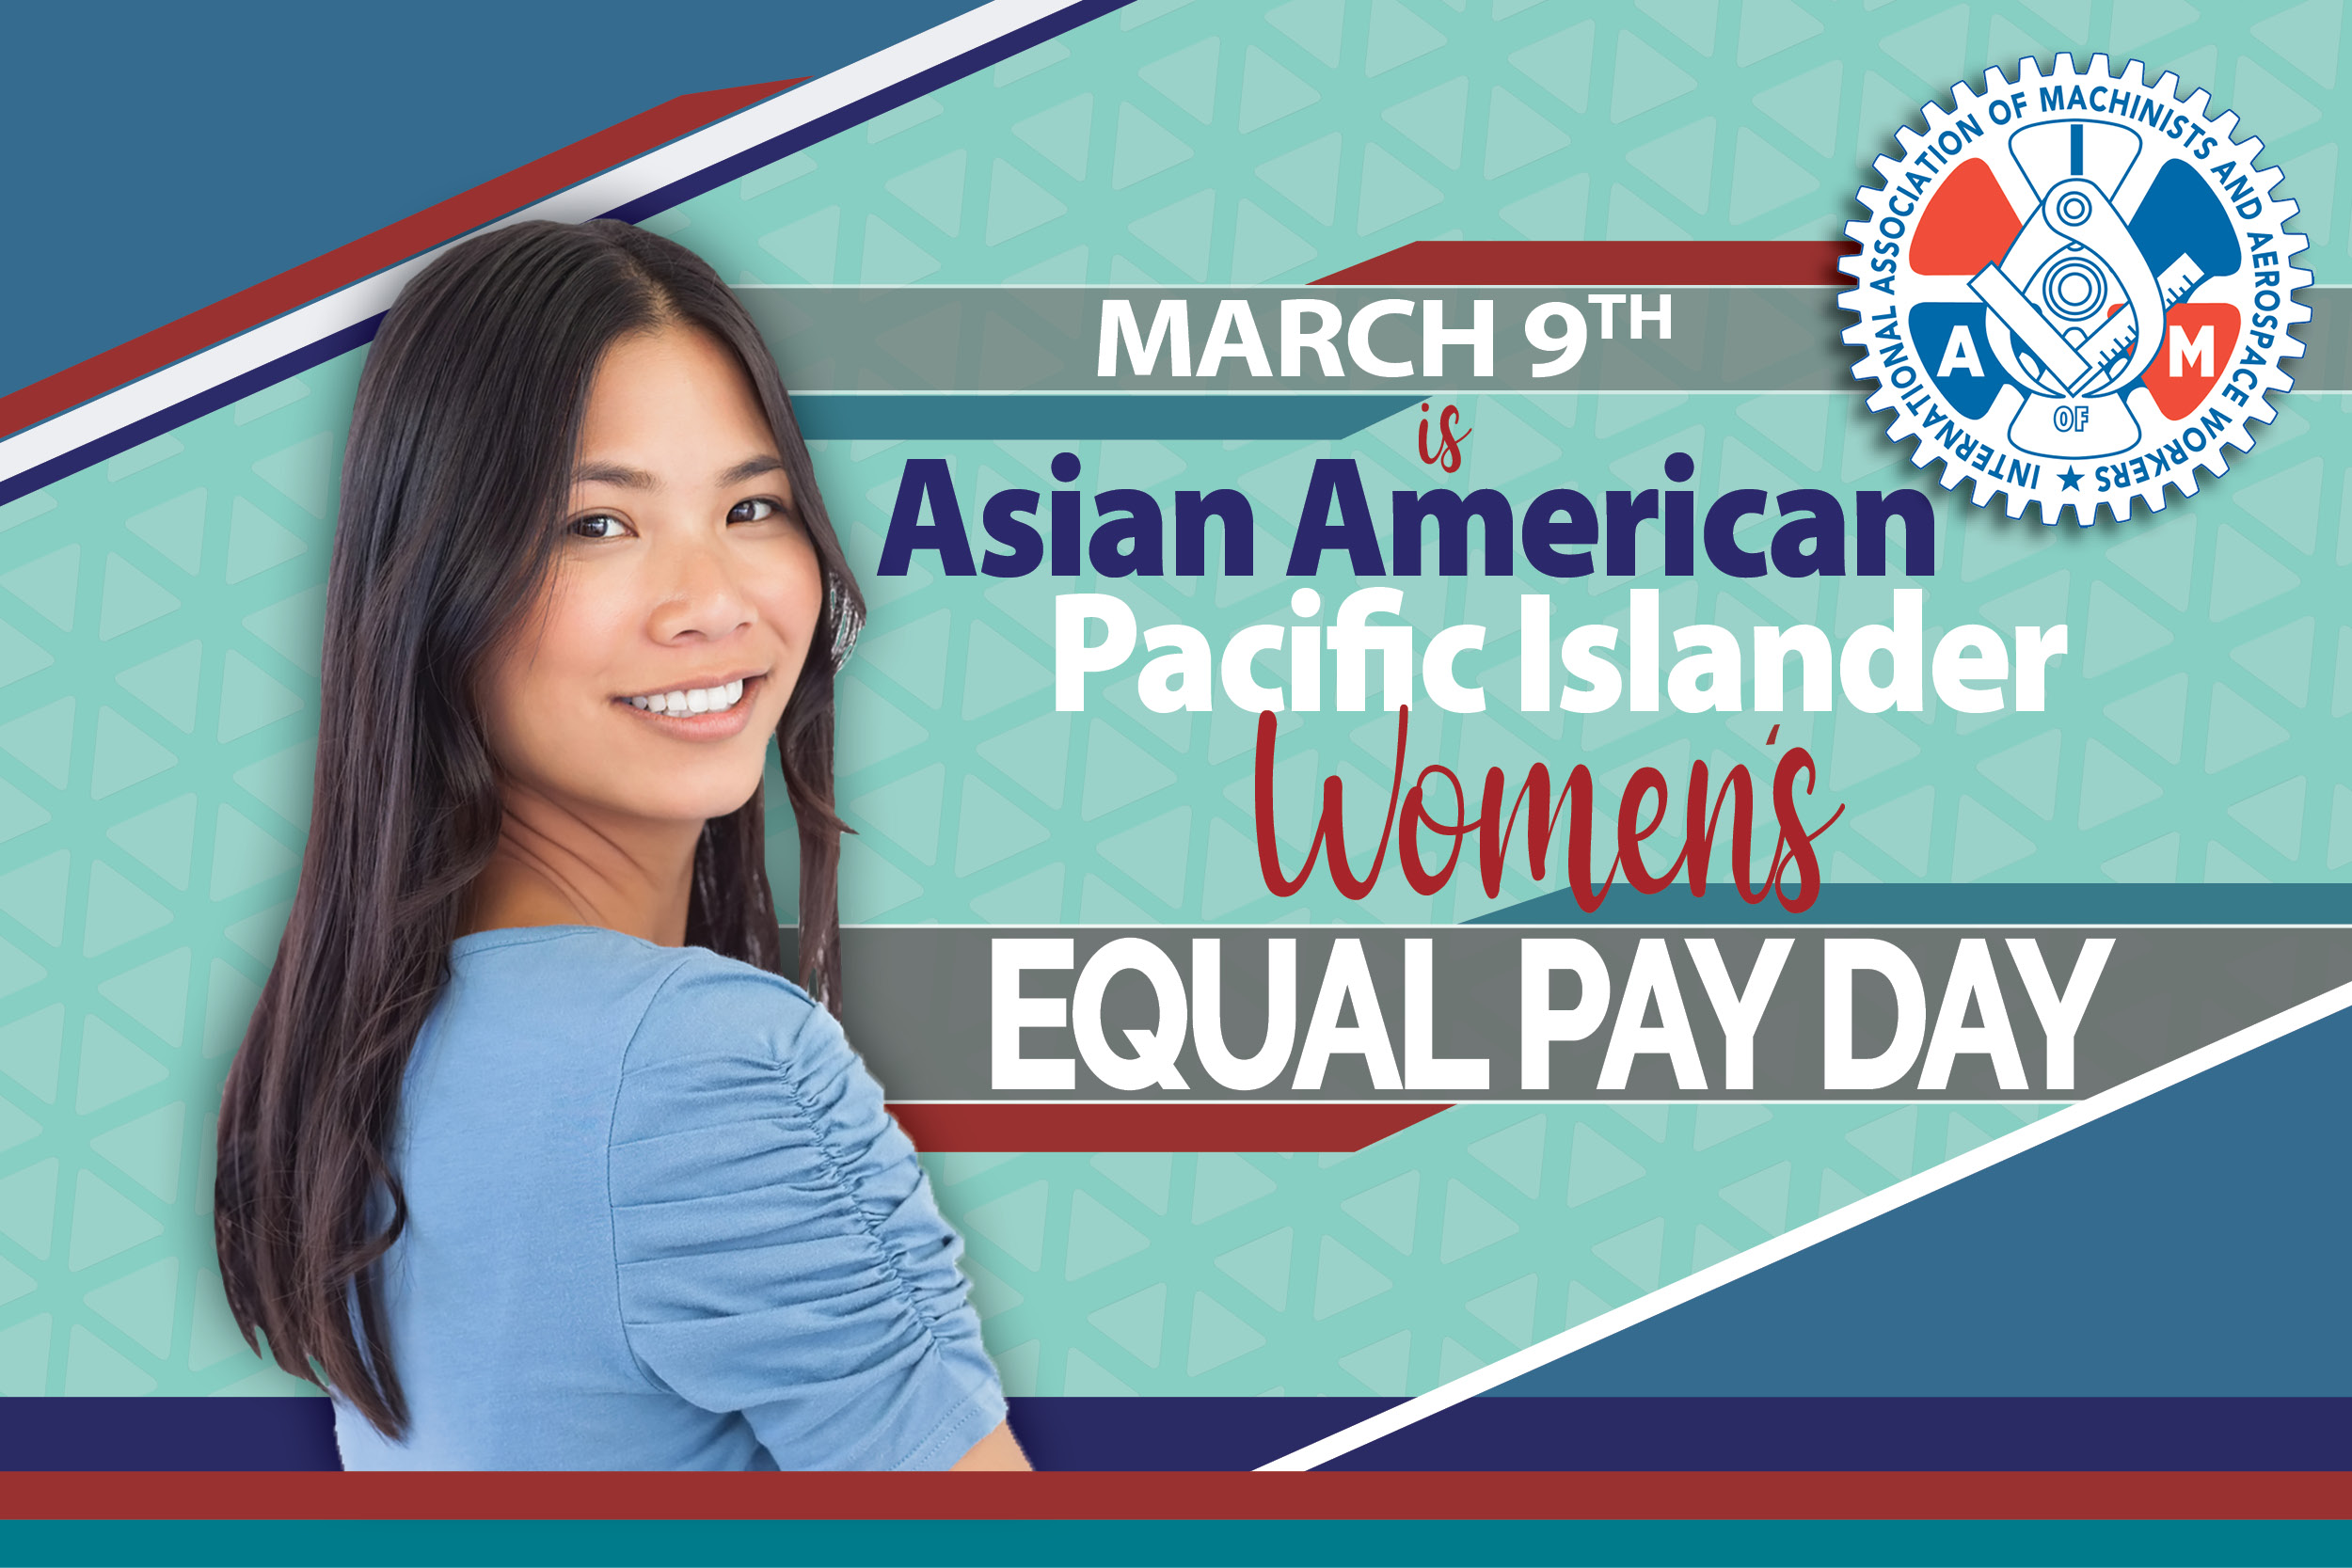 IAM Troubled by Income Inequality among Asian American Women